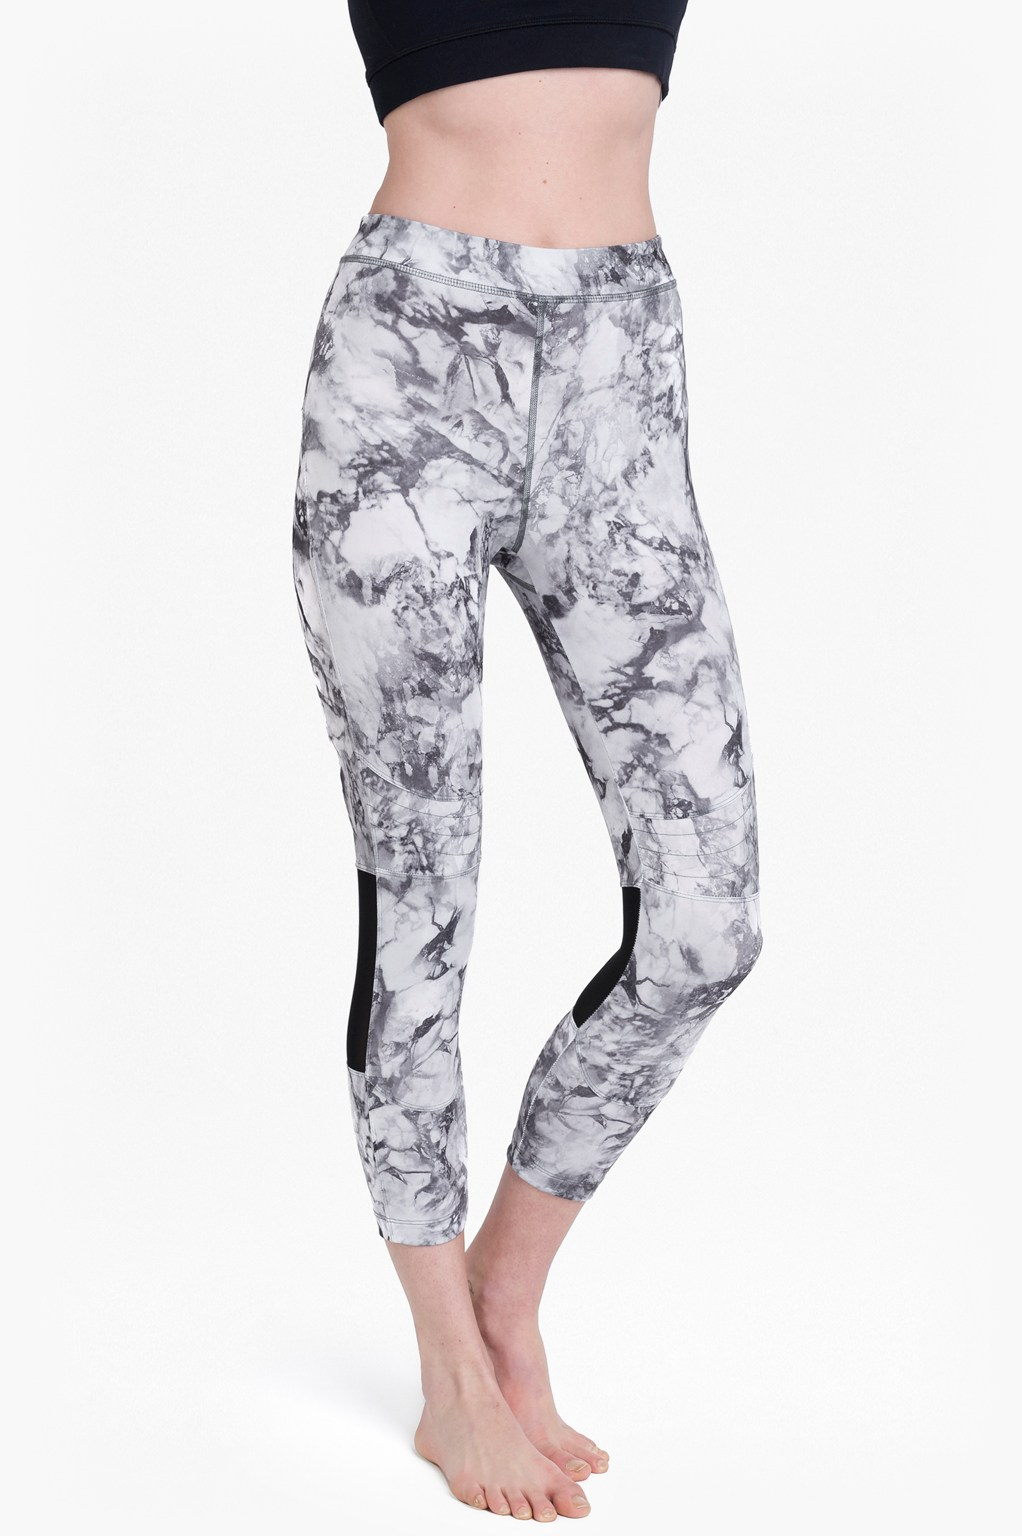 Comfort Stretch Marble Print Cropped Performance Leggings - grey multi marble